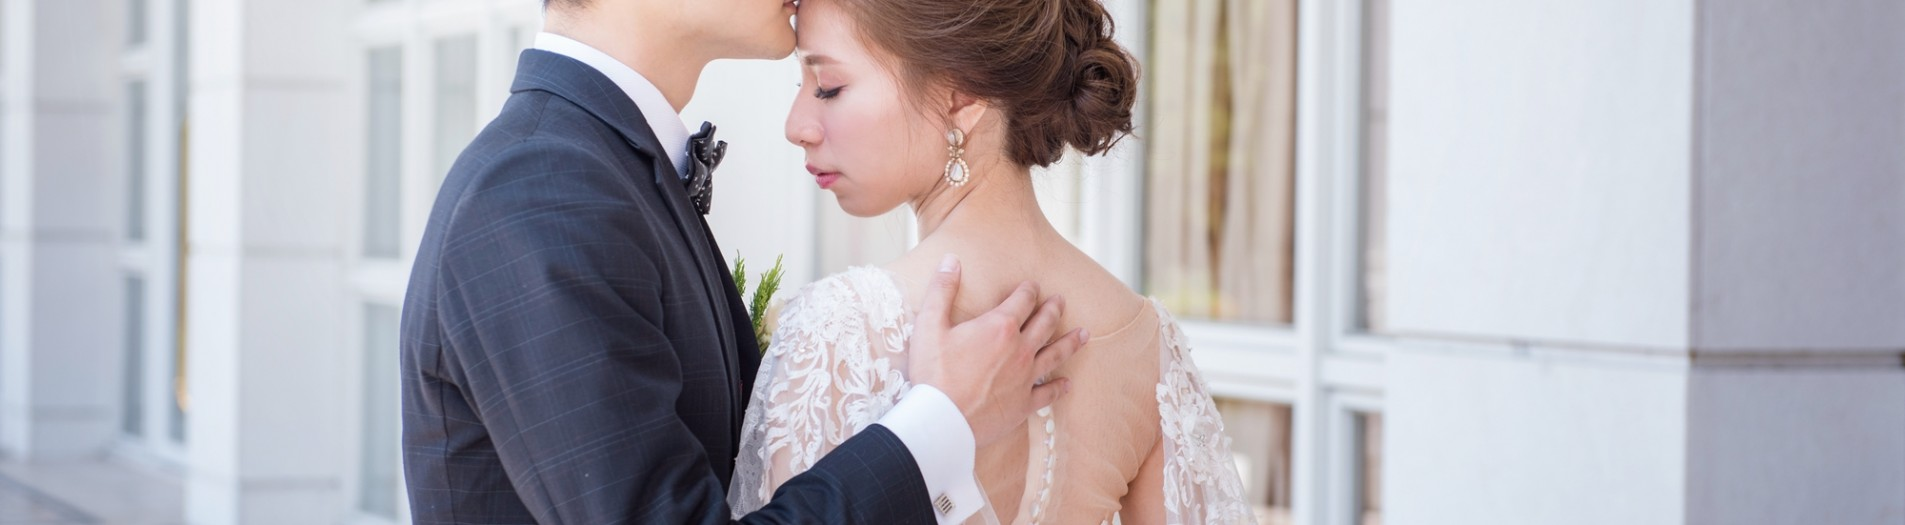 Sunny &Terence  婚禮記錄